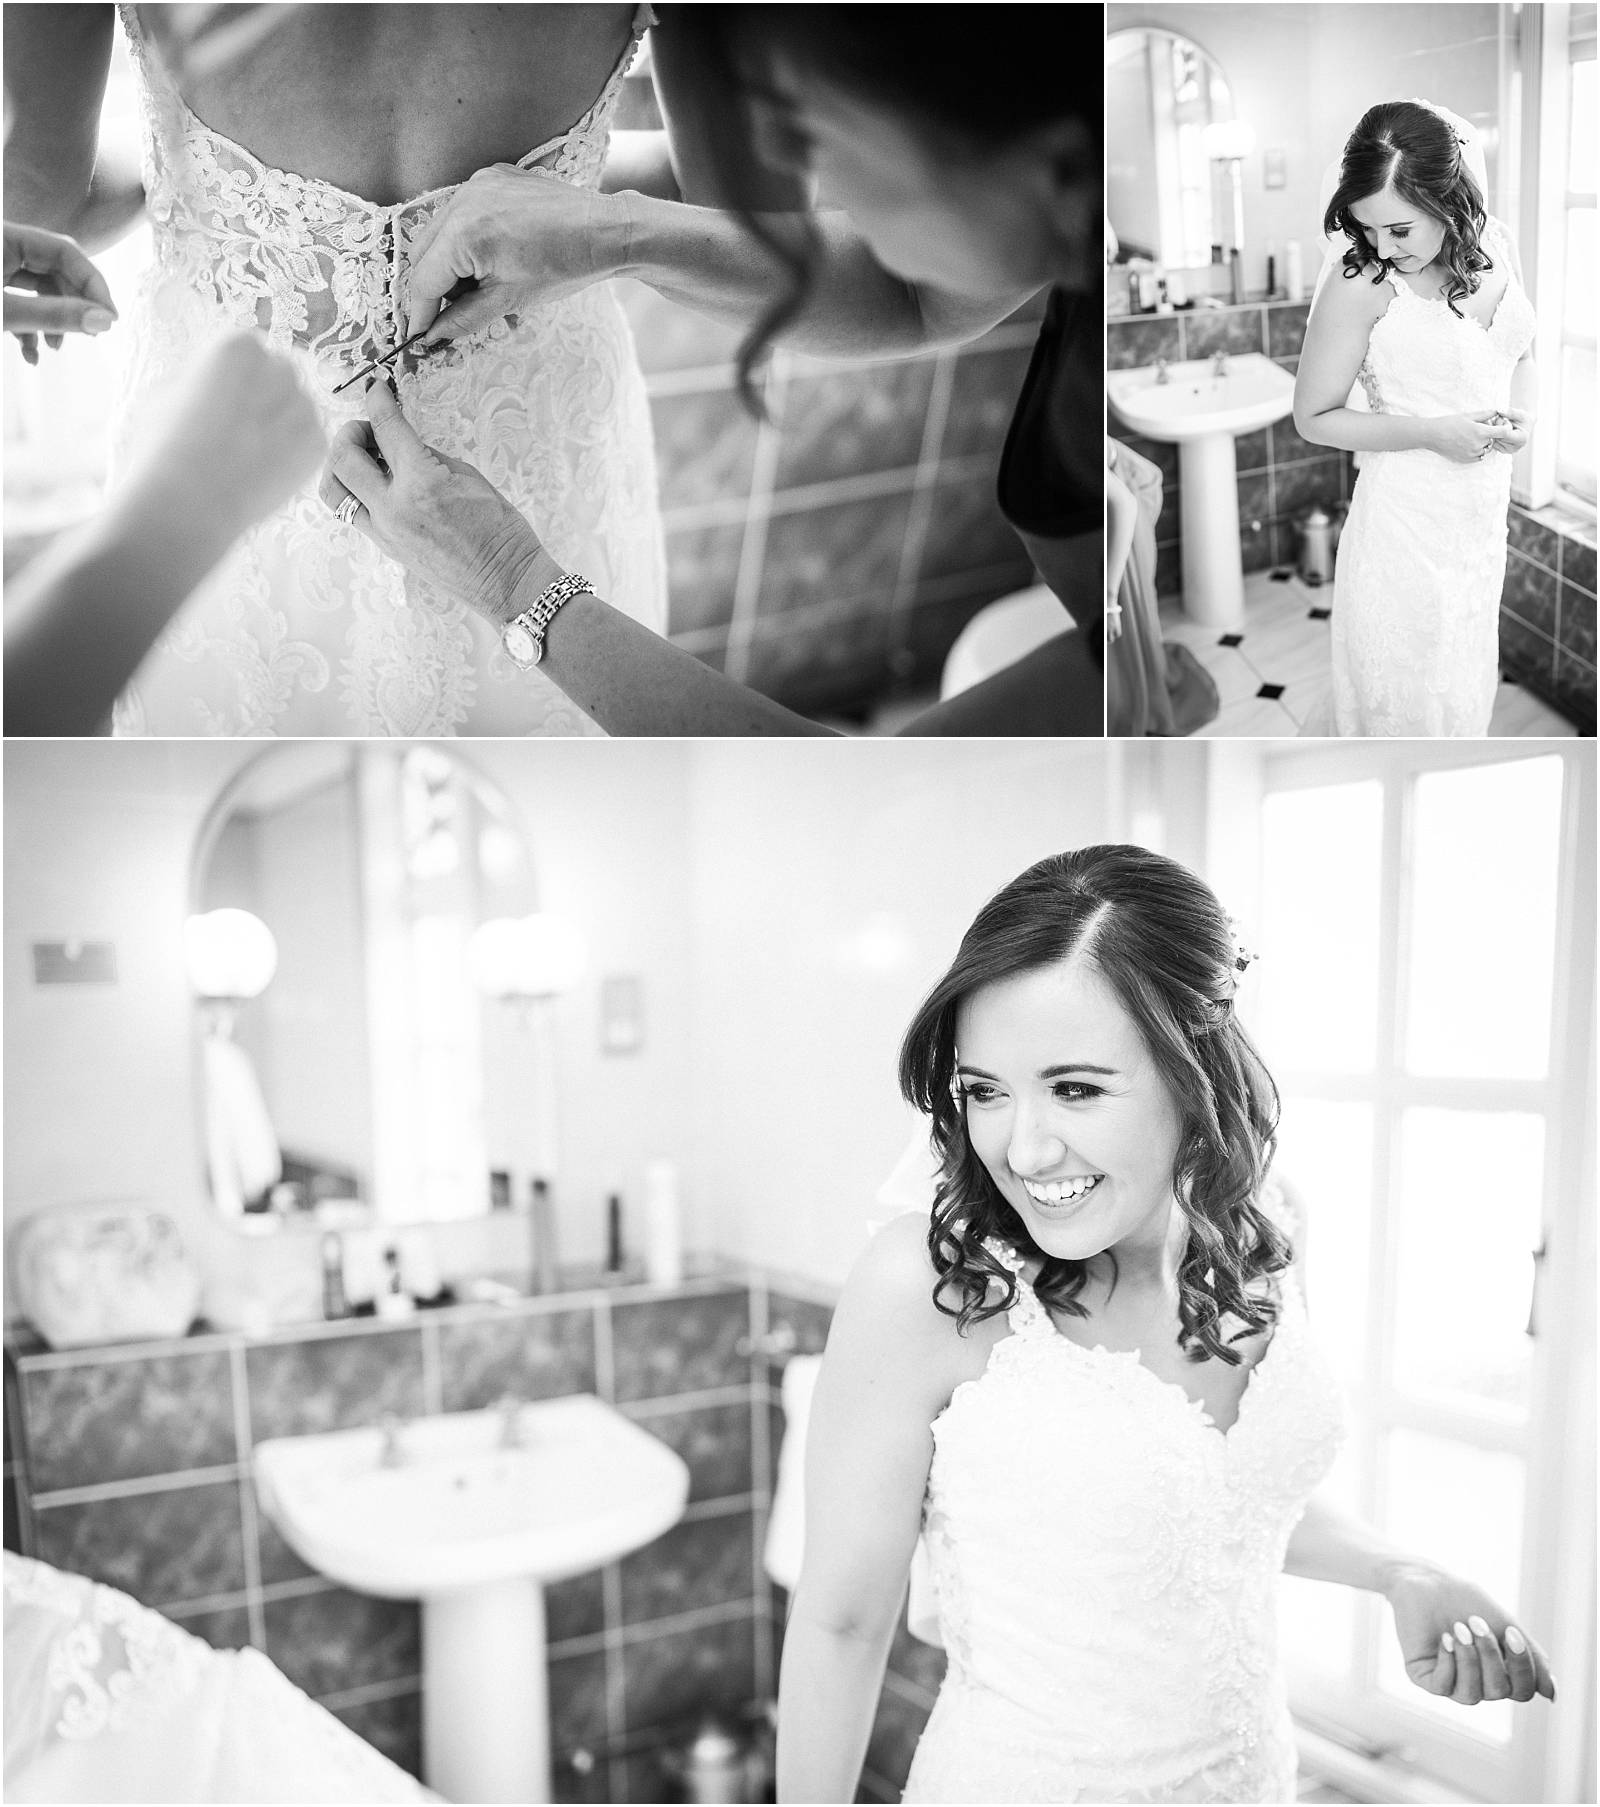 black and white photographs of bride putting on wedding dress